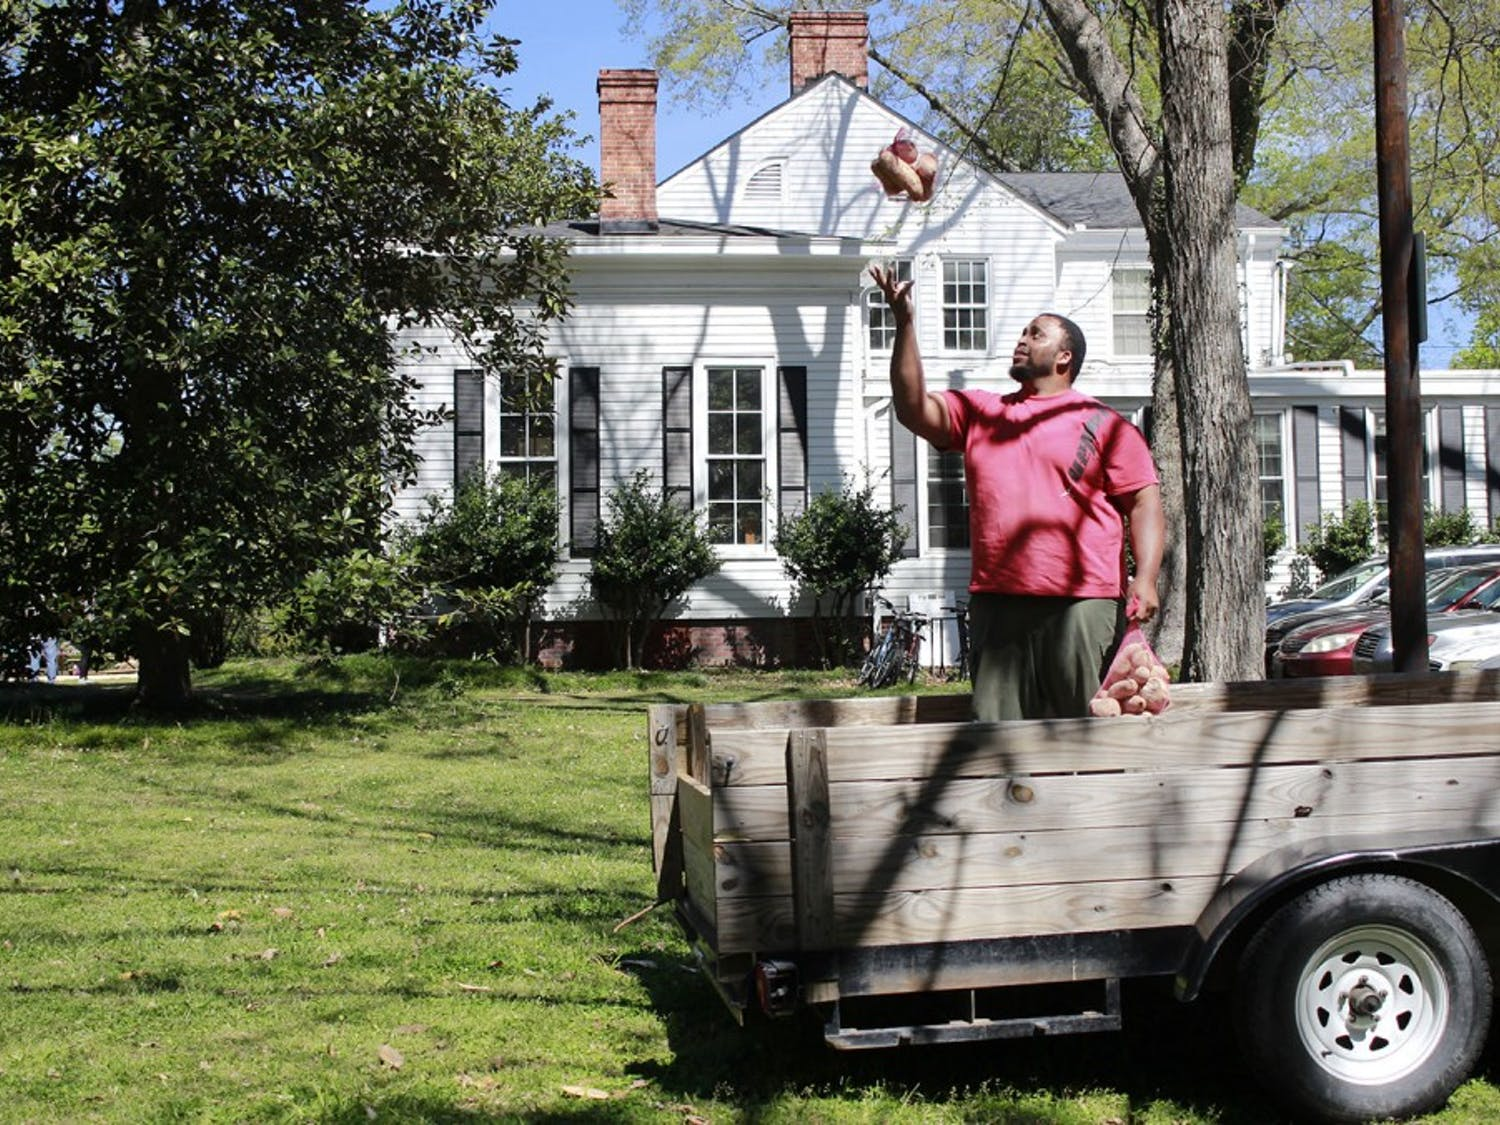 Jason Brown, a former UNC football player, tosses a sack of sweet potatoes into the air behind the UNC Study Center on Saturday. Brown, who left the NFL to become a farmer, donated 20,000 pounds of sweet potatoes to food banks and church programs across North Carolina. The potatoes were bagged up by local volunteers to be shipped out on Saturday.